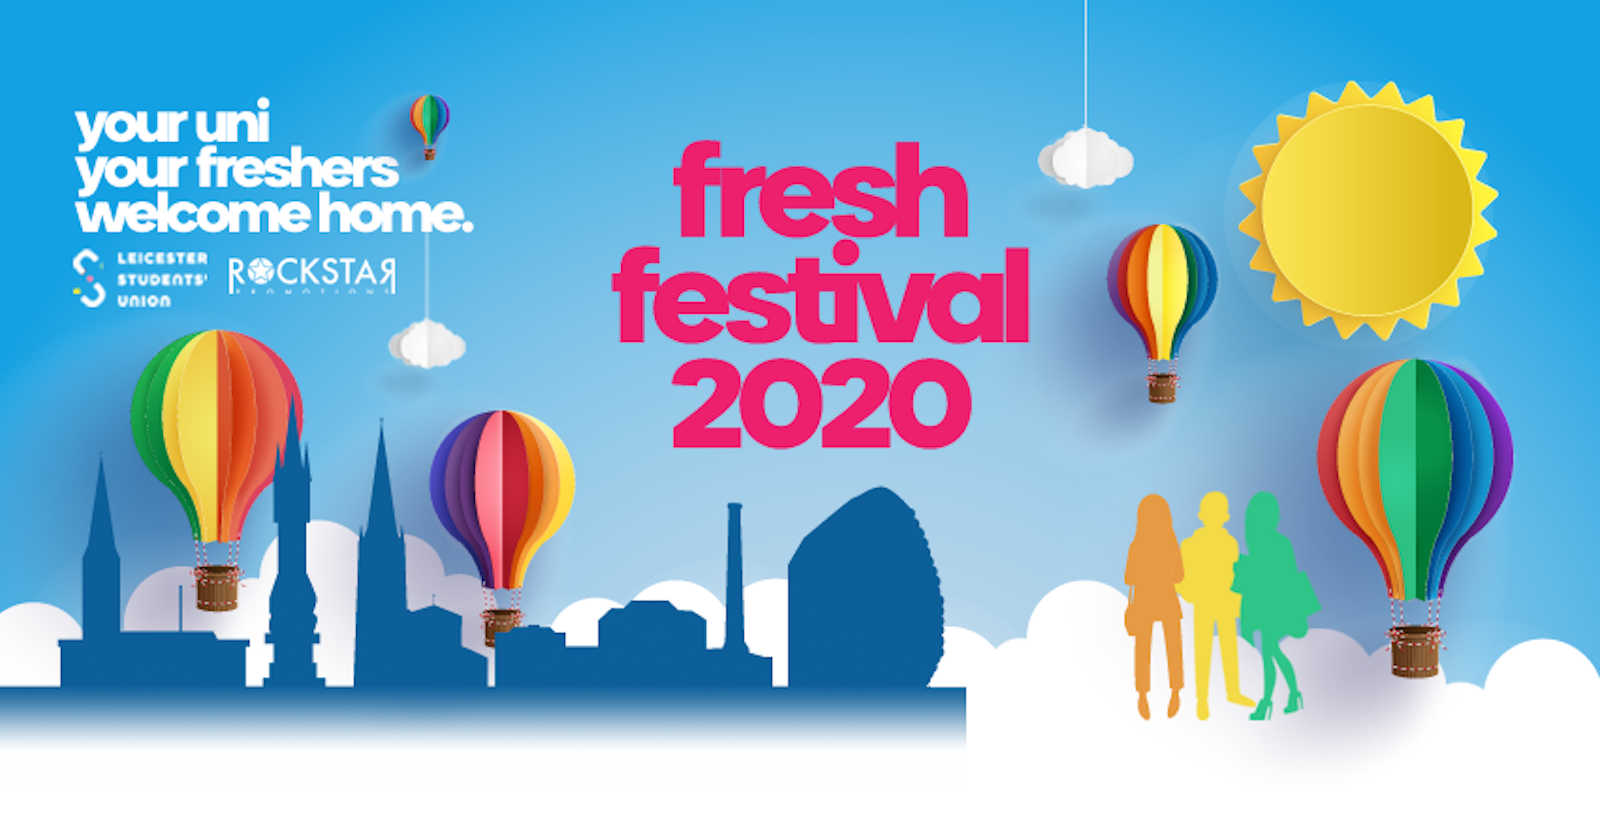 Fresh Festival 2020! University of Leicester Freshers.